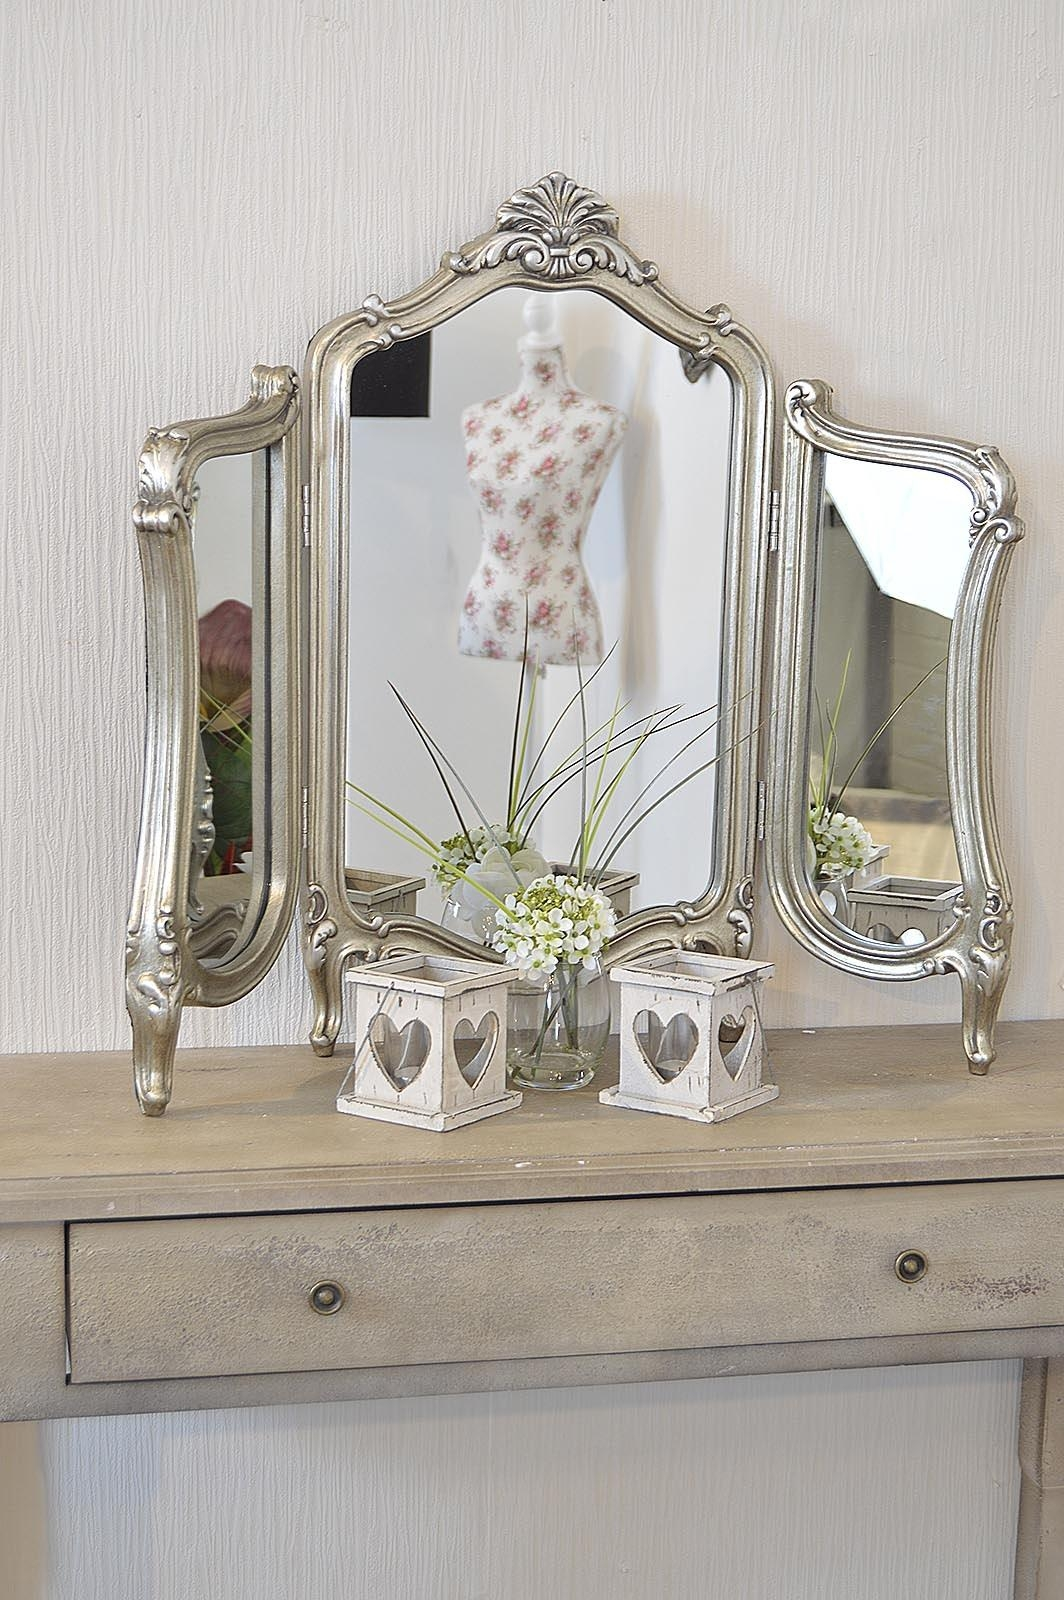 Stunning Antique Design Free Standing Dressing Table Mirror – M315 Inside Dressing Table Mirror (Image 15 of 20)